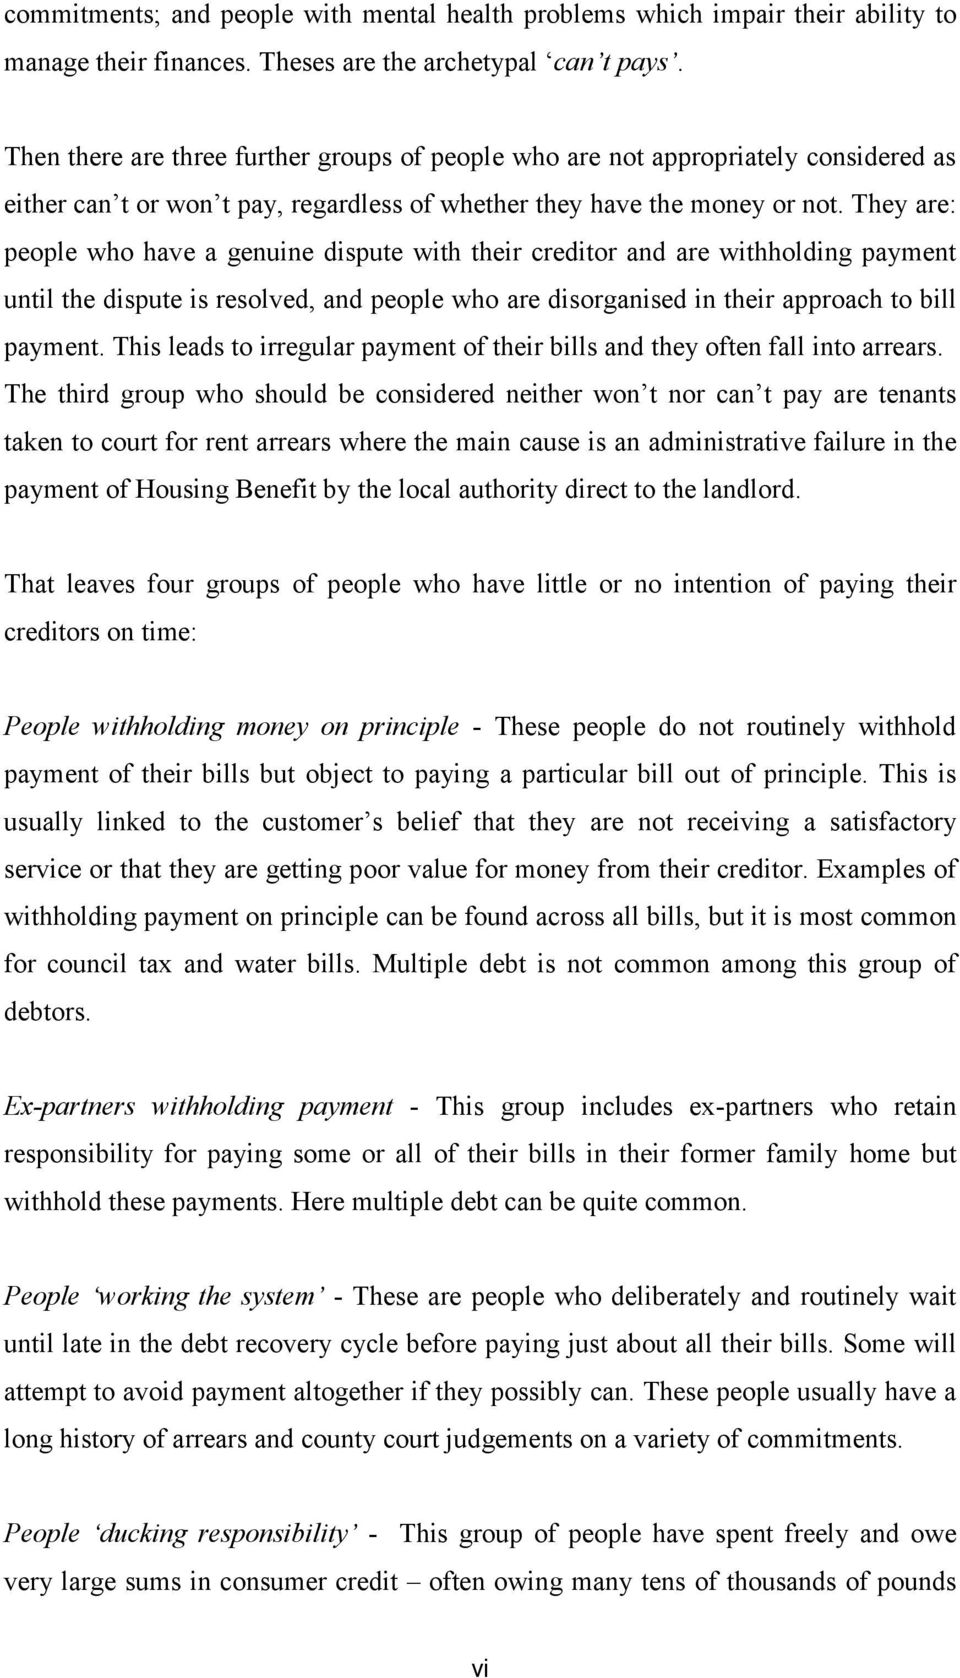 They are: people who have a genuine dispute with their creditor and are withholding payment until the dispute is resolved, and people who are disorganised in their approach to bill payment.